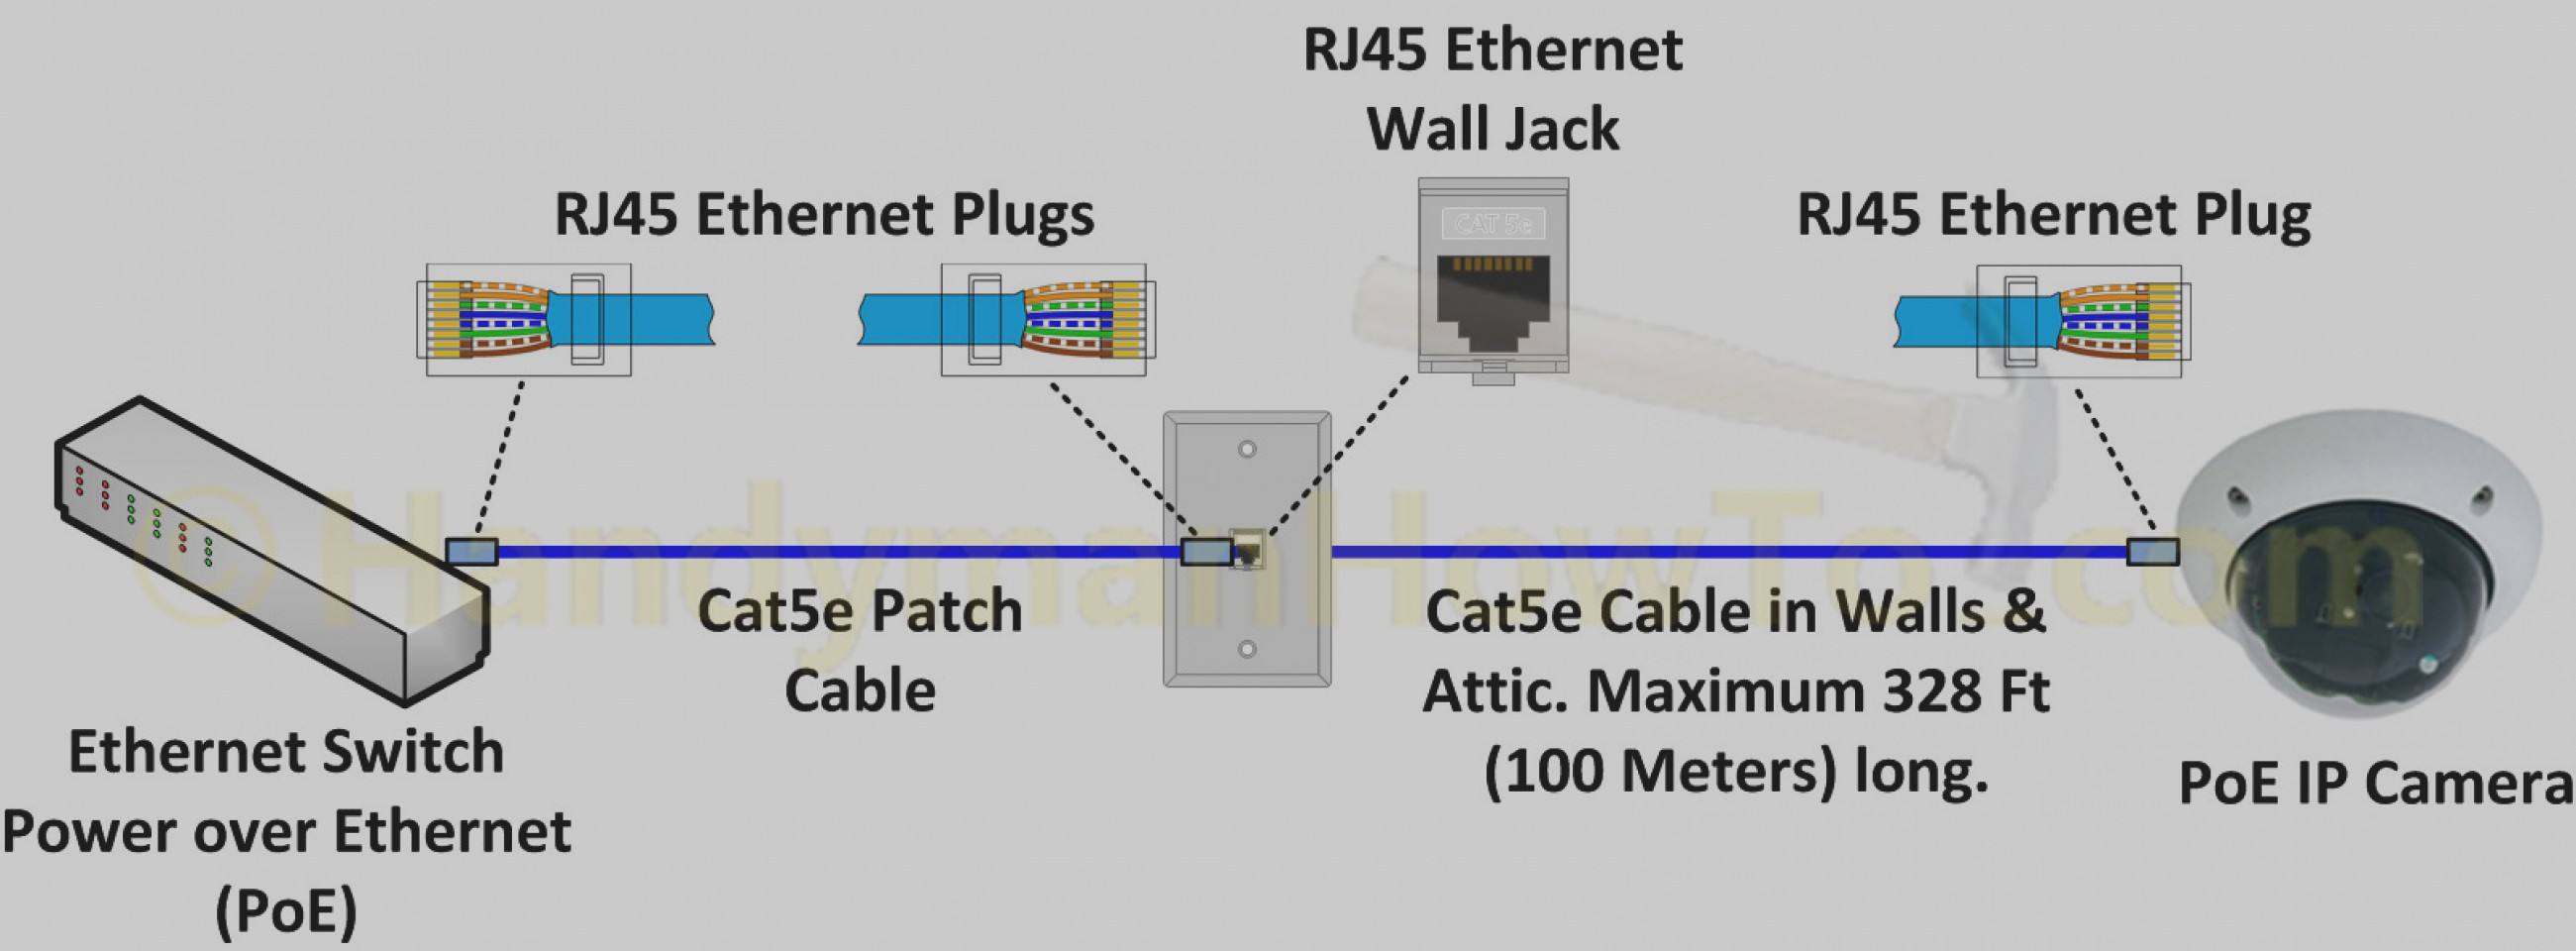 medium resolution of network cat5 wiring diagrams attic cat5 wire order dish networkdish punch down cat 5 wiring